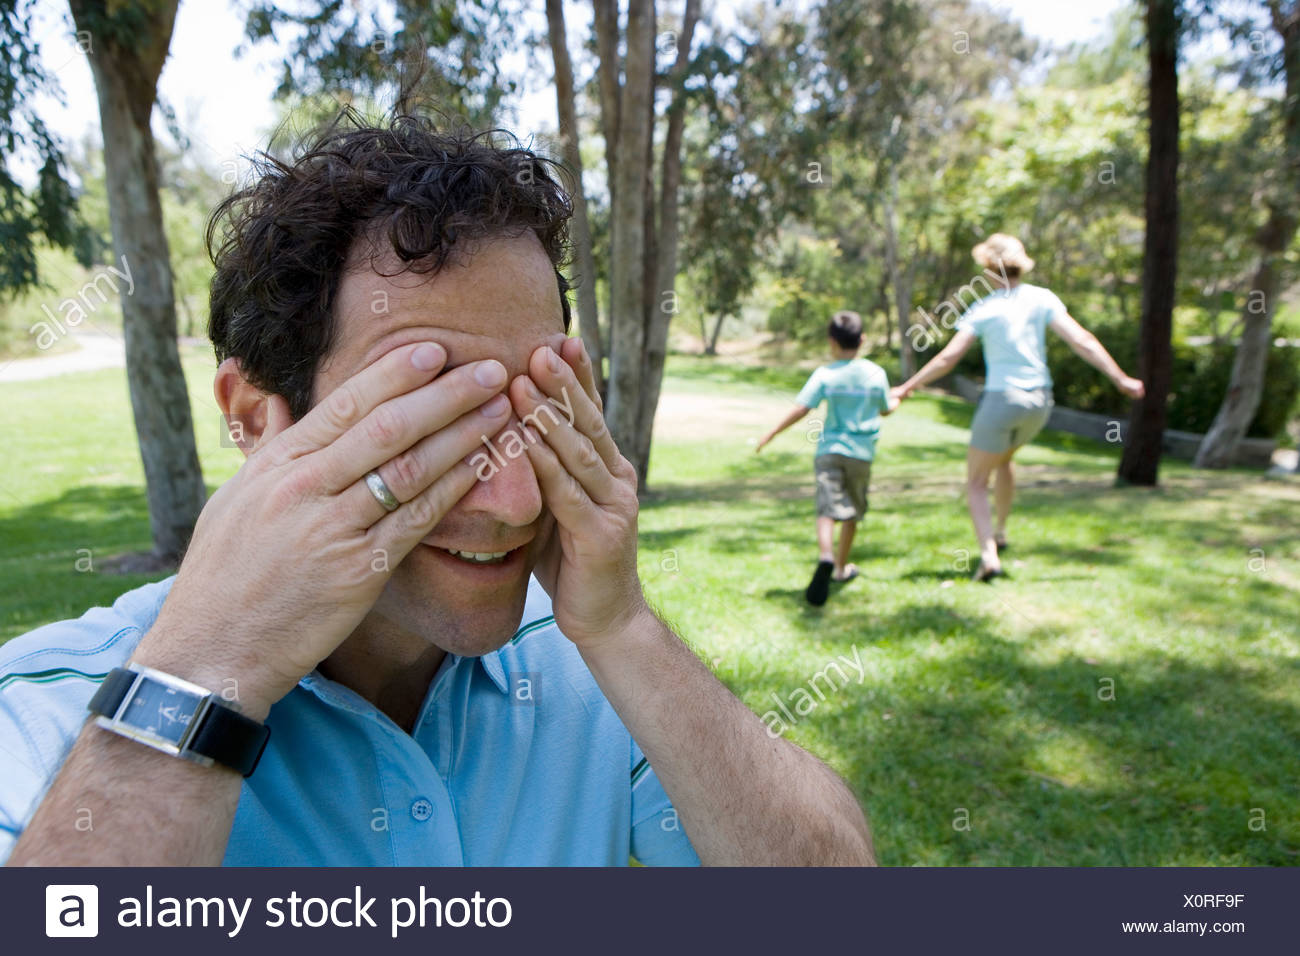 Family playing hide and seek in park boy 9 11 and mother running man covering eyes in foreground - Stock Image